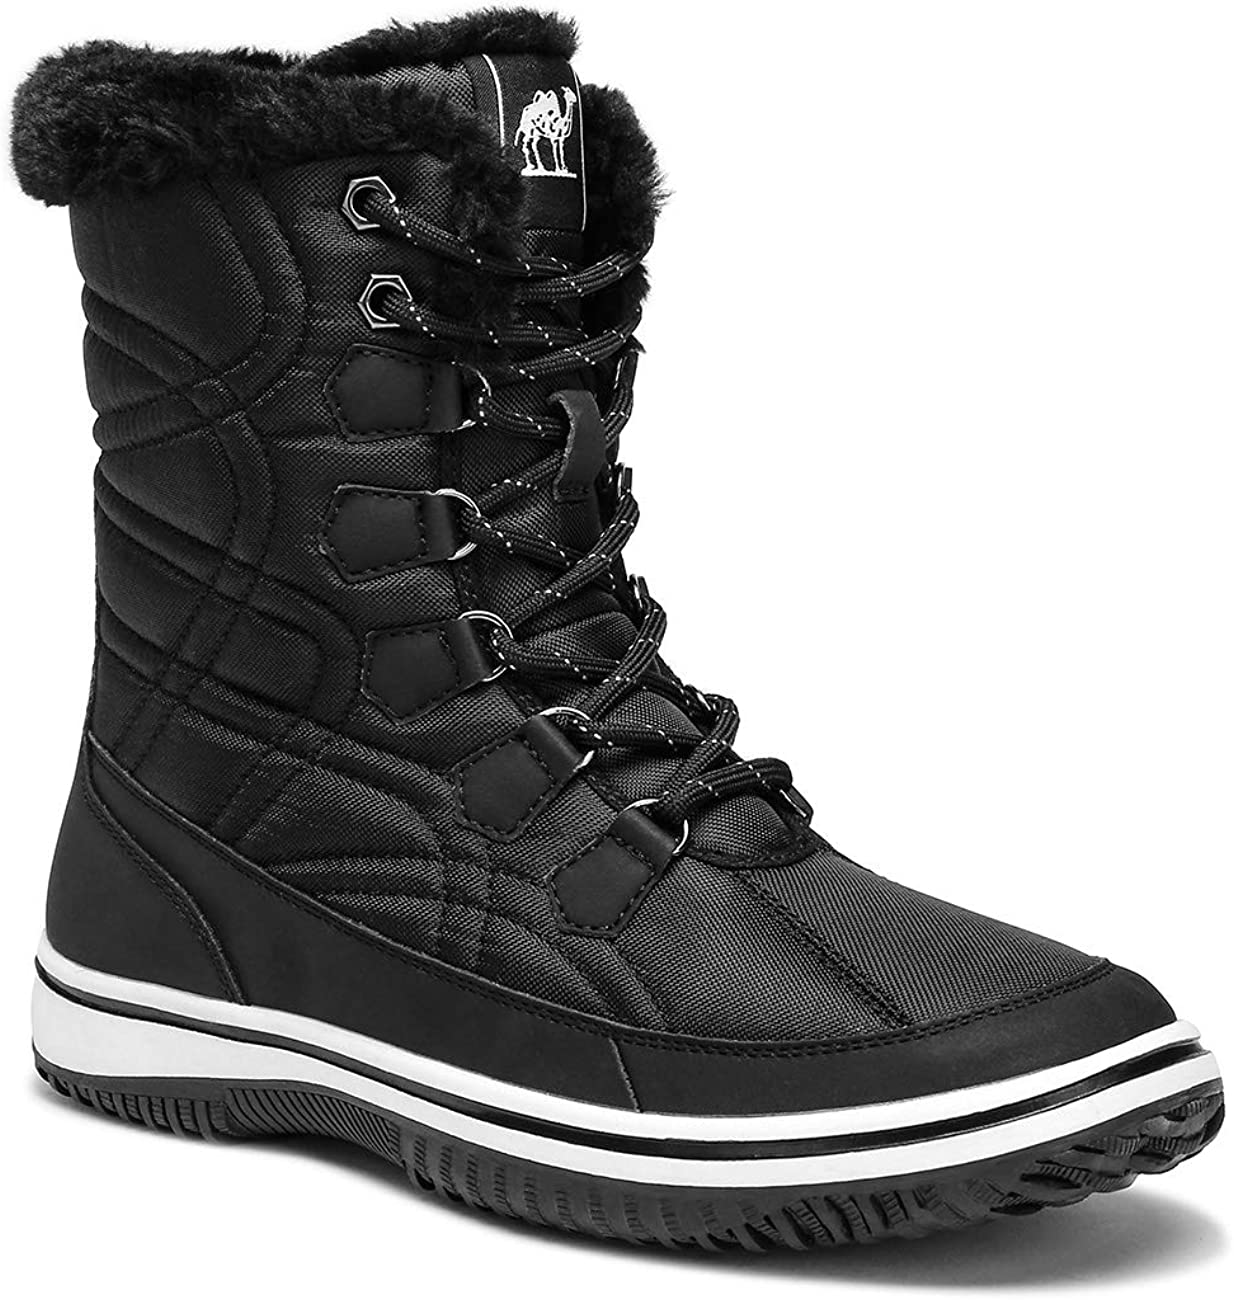 CAMEL Women's Winter Boots Thermal Snow